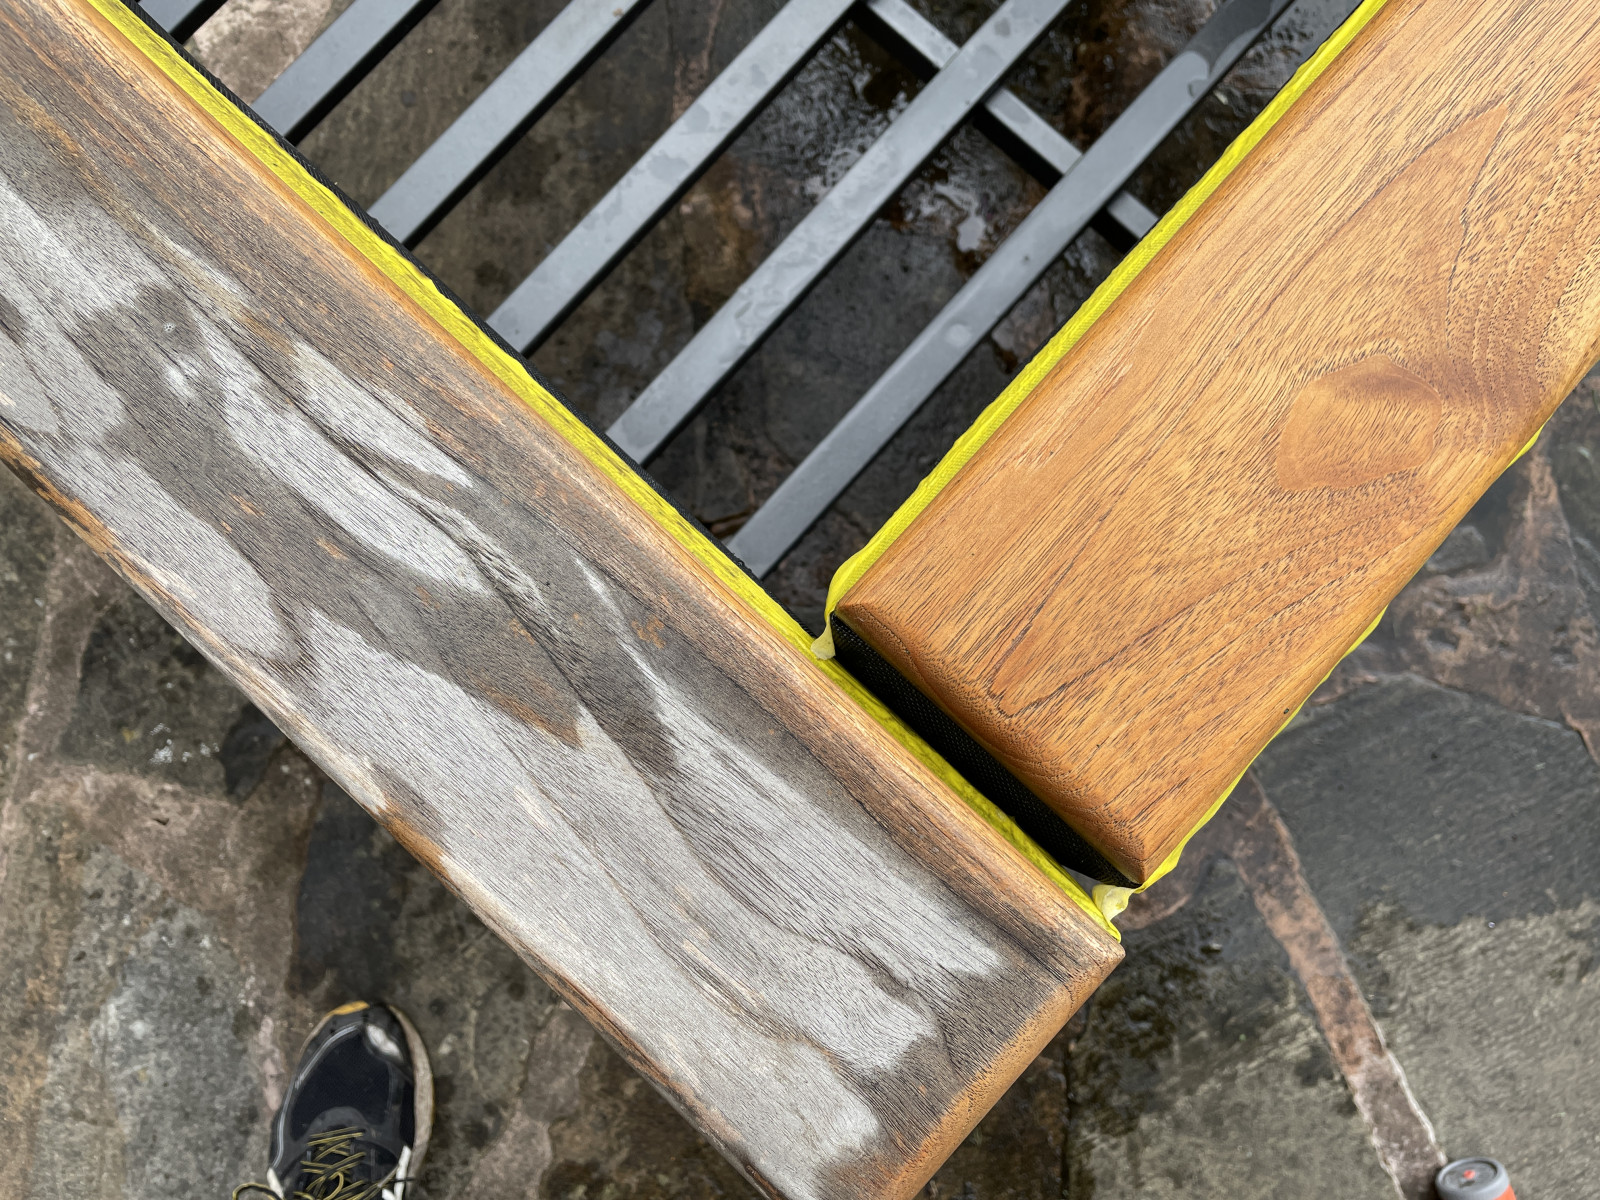 This image shows one part of a teak chair before cleaning, and one part after cleaning with Barlow Tyrie's teak cleaner.